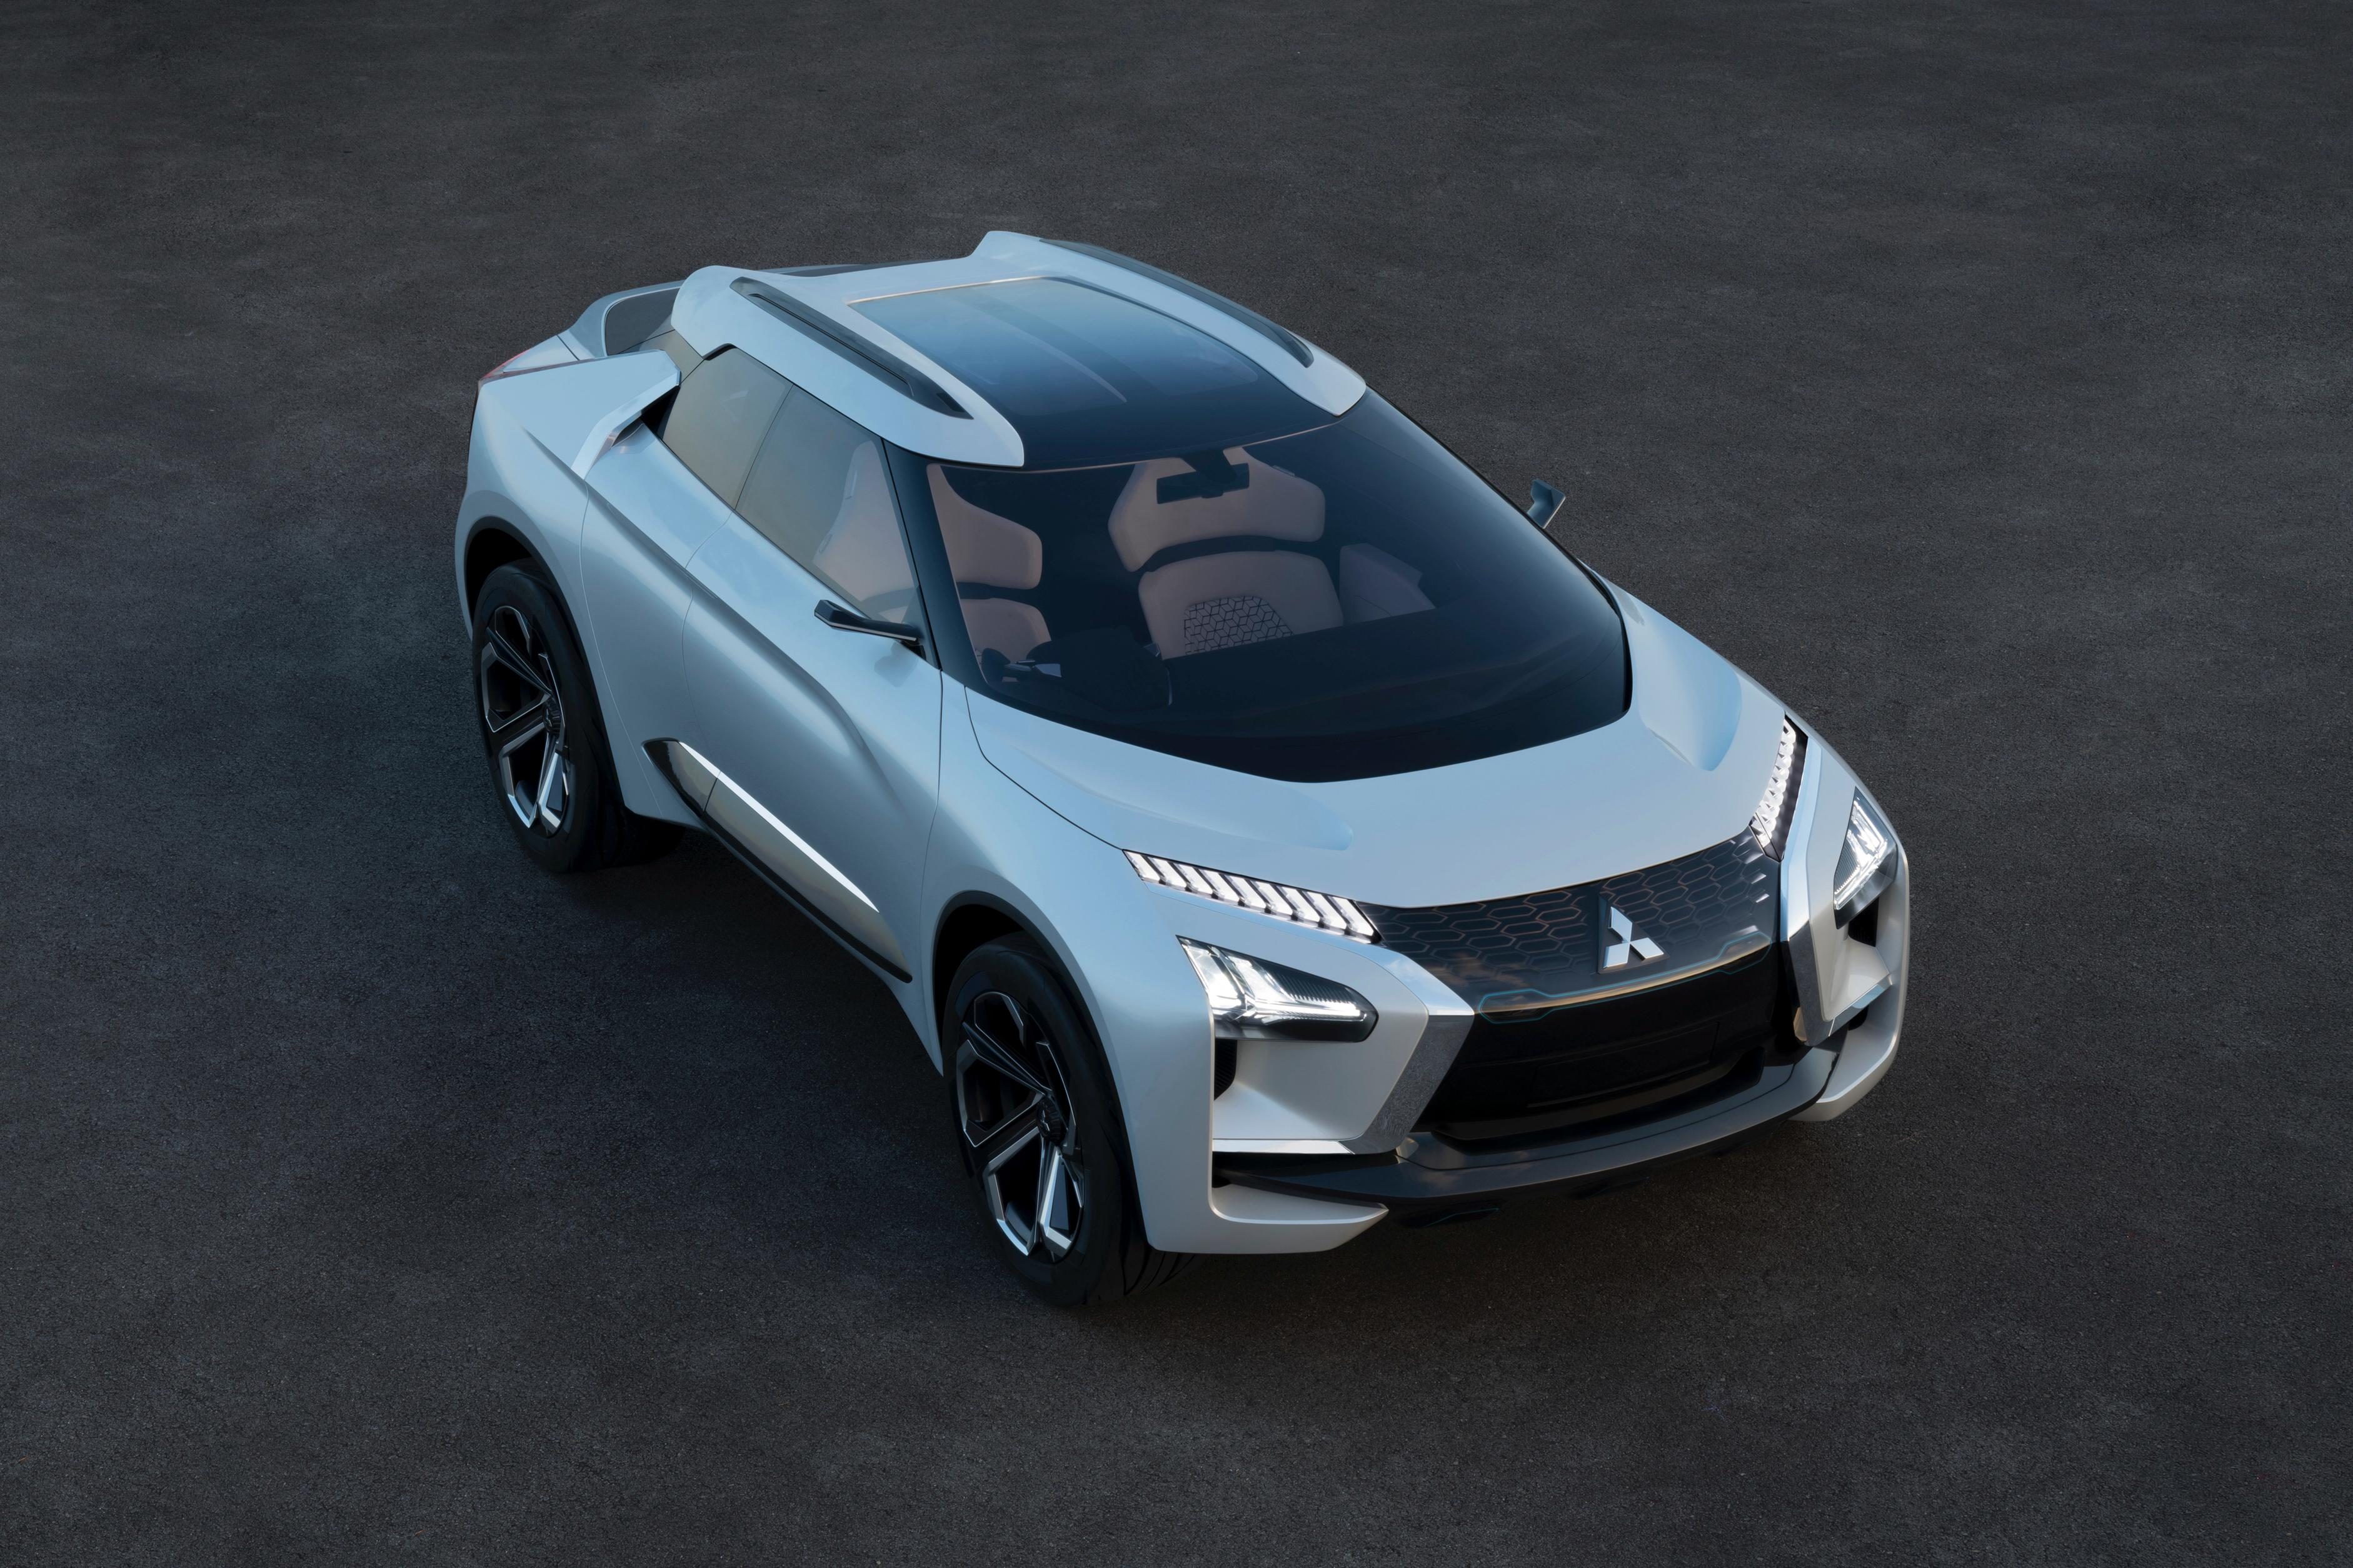 Production Mitsubishi e-Evolution to debut this year – report